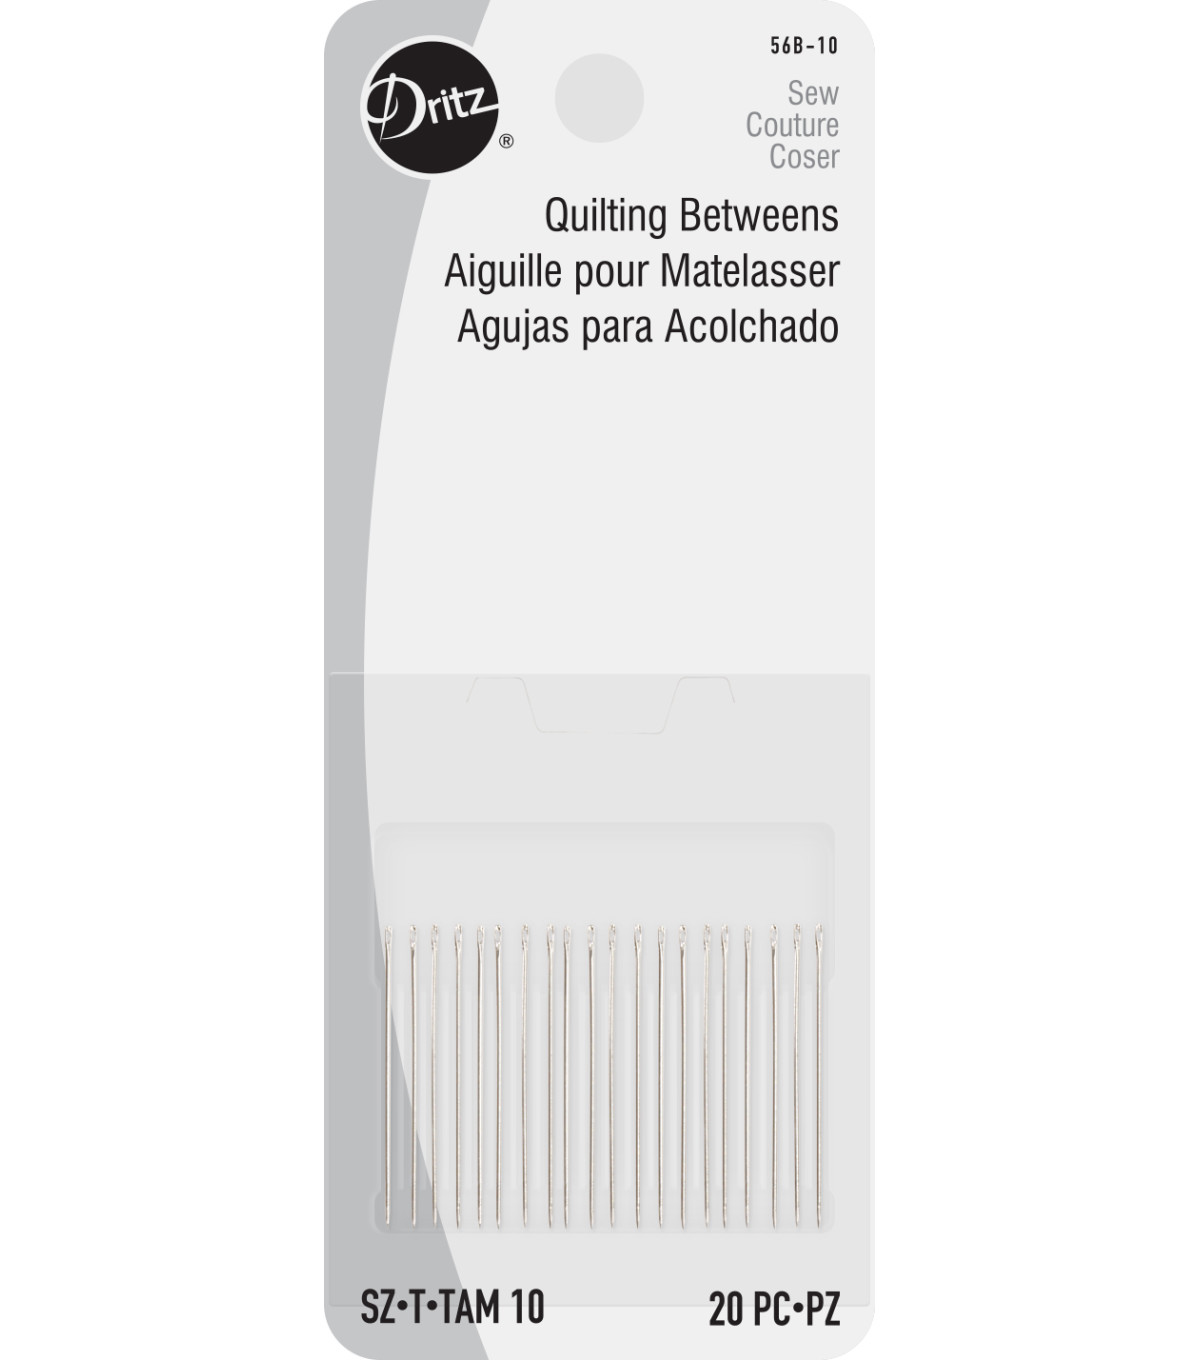 Dritz Quilting Betweens Hand Needles 20pcs Size 5/10, Size 10 20/pkg